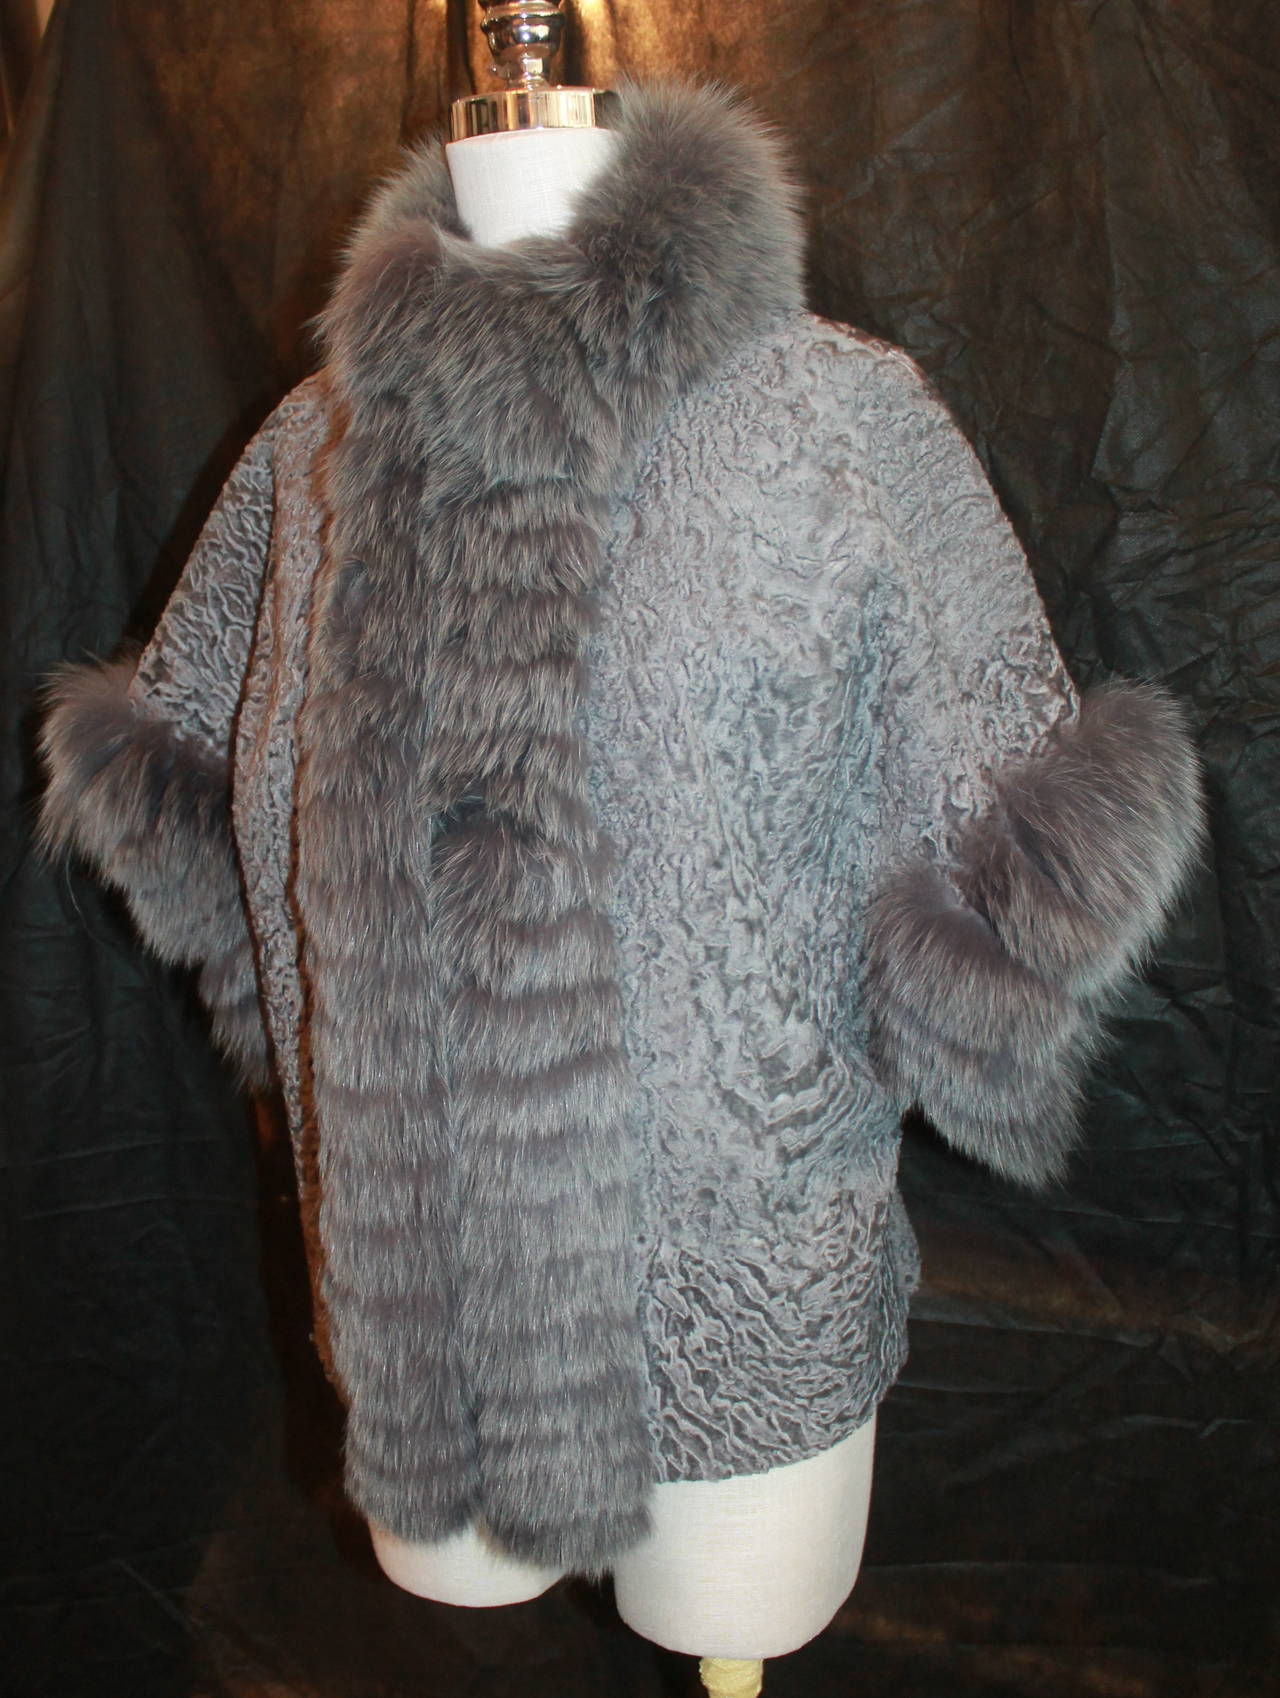 Olivia Preckel Grey Broadtail & Fox Fur Jacket - M. This fur is in excellent condition and has never been used.   Measurements: Sleeve Length- 11